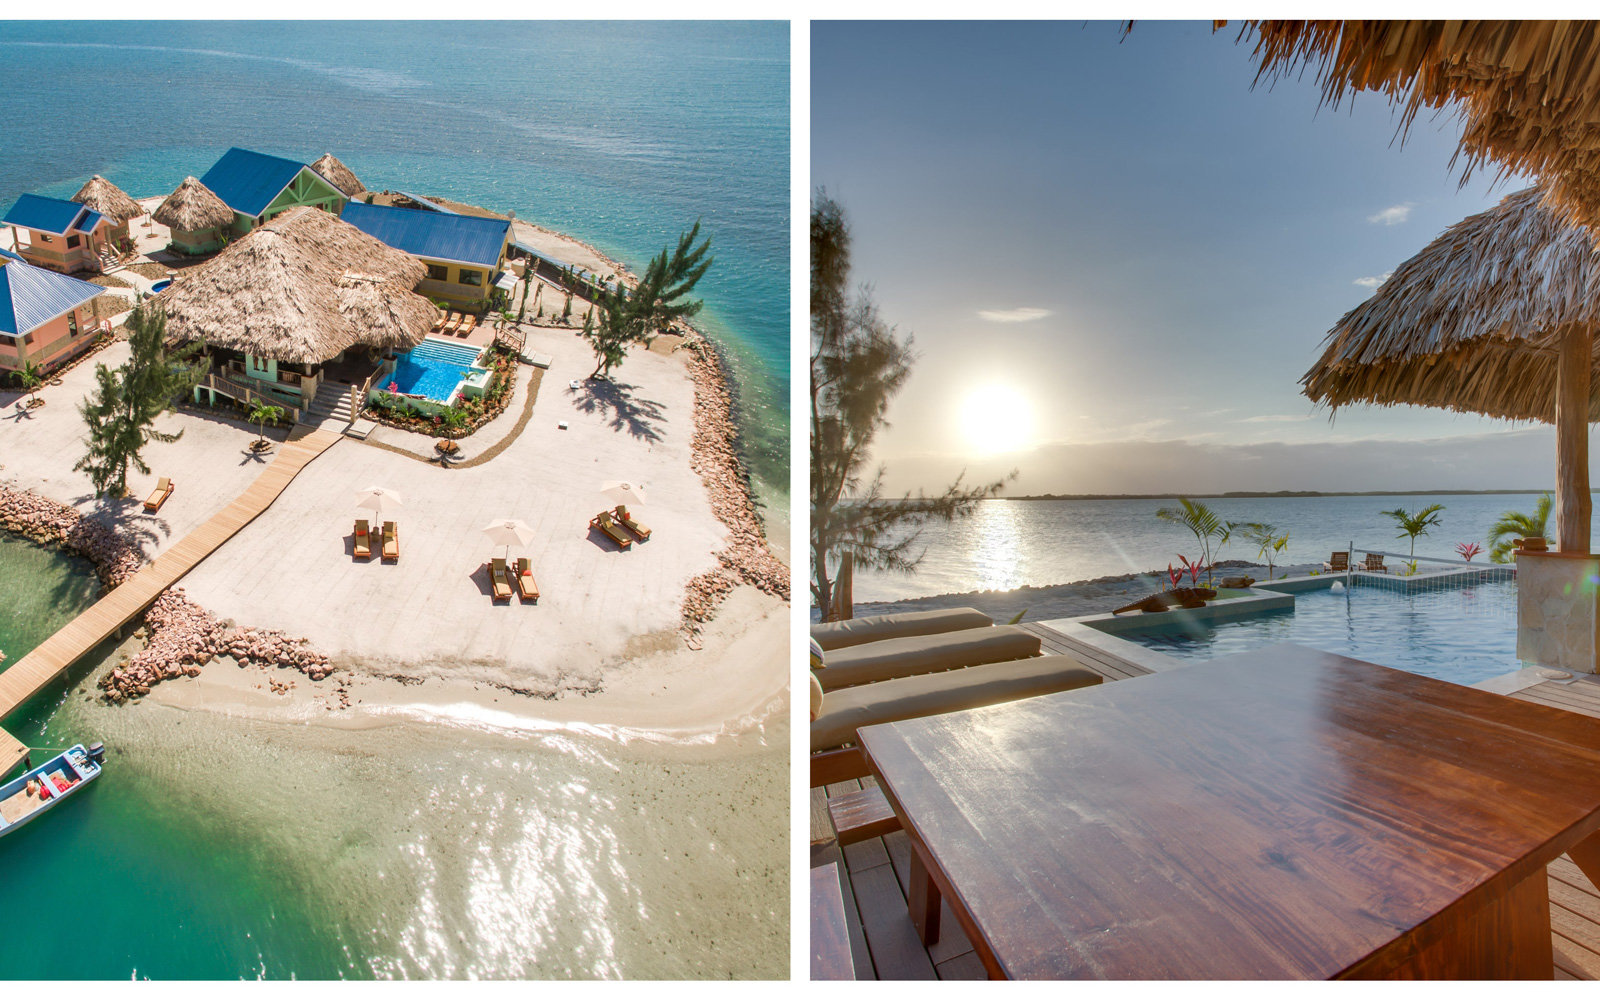 Private island getaways for couples